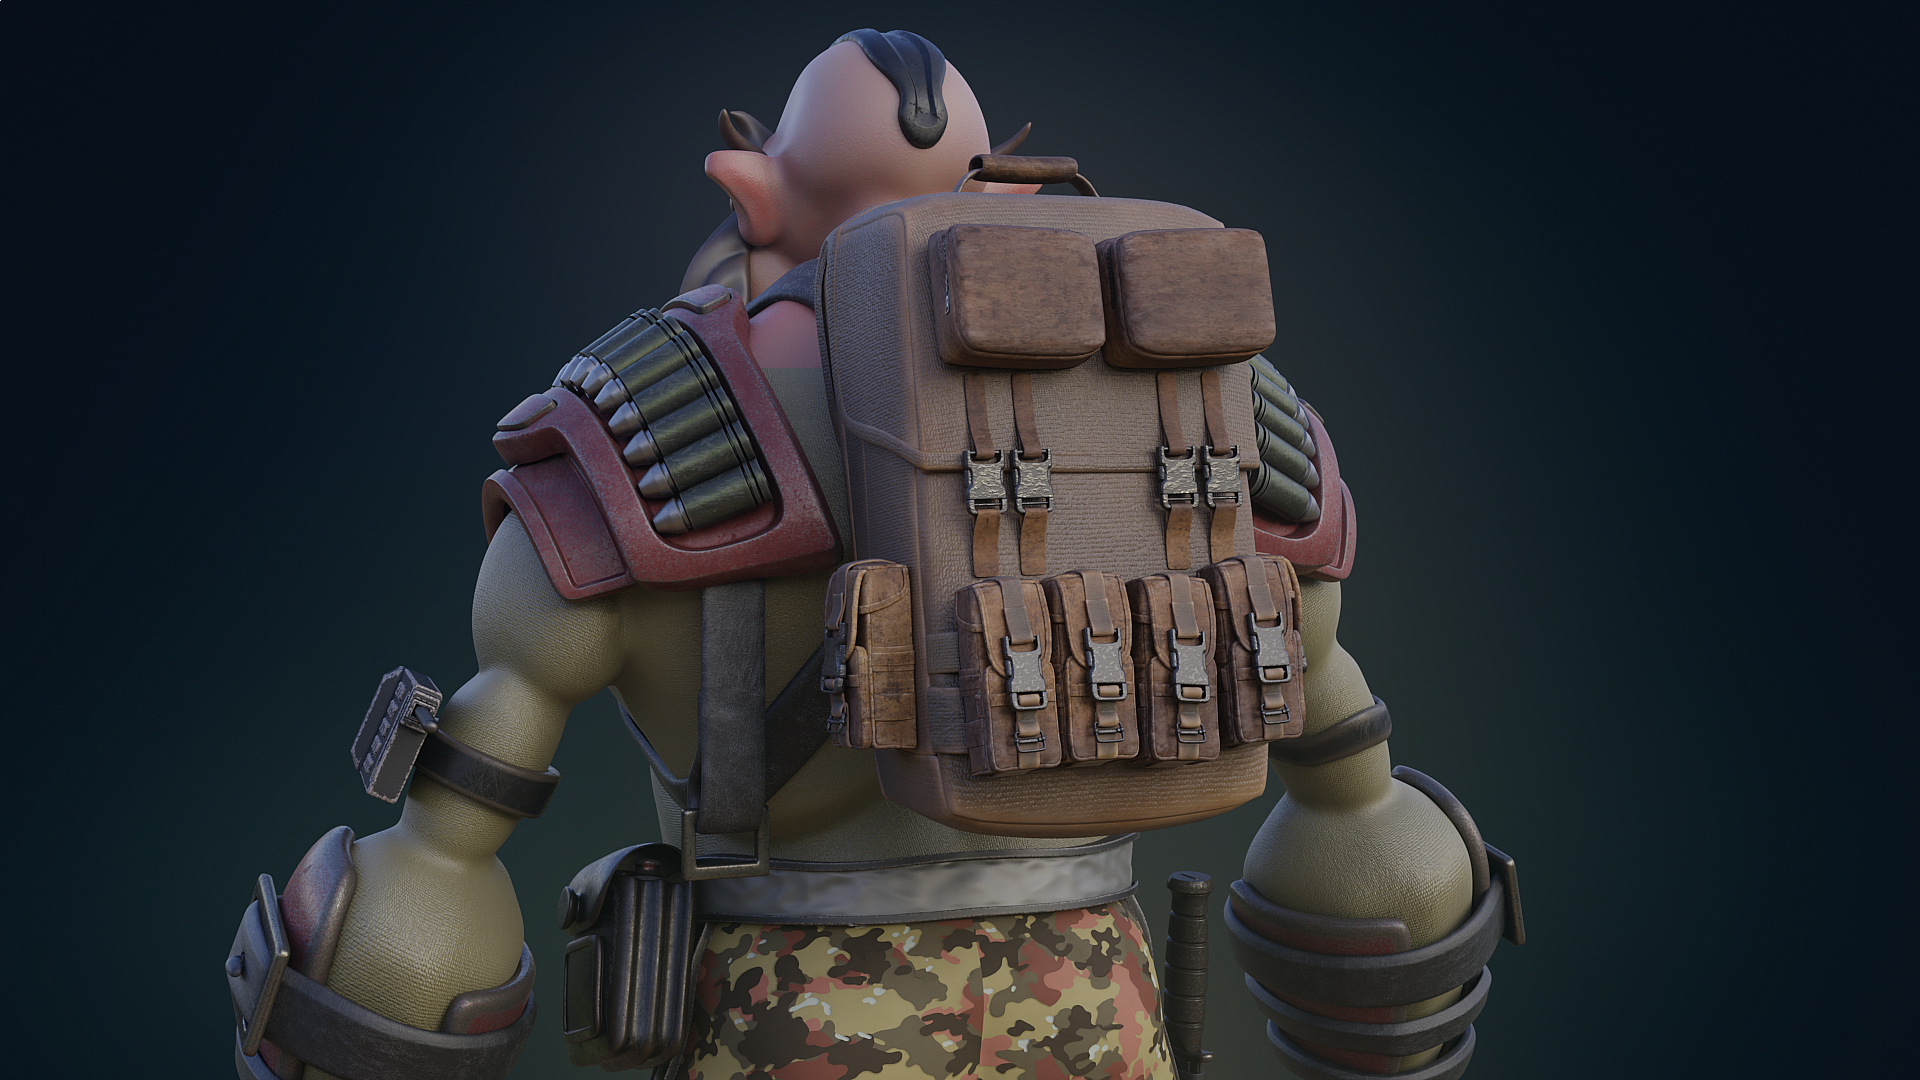 soldier in Blender cycles render image